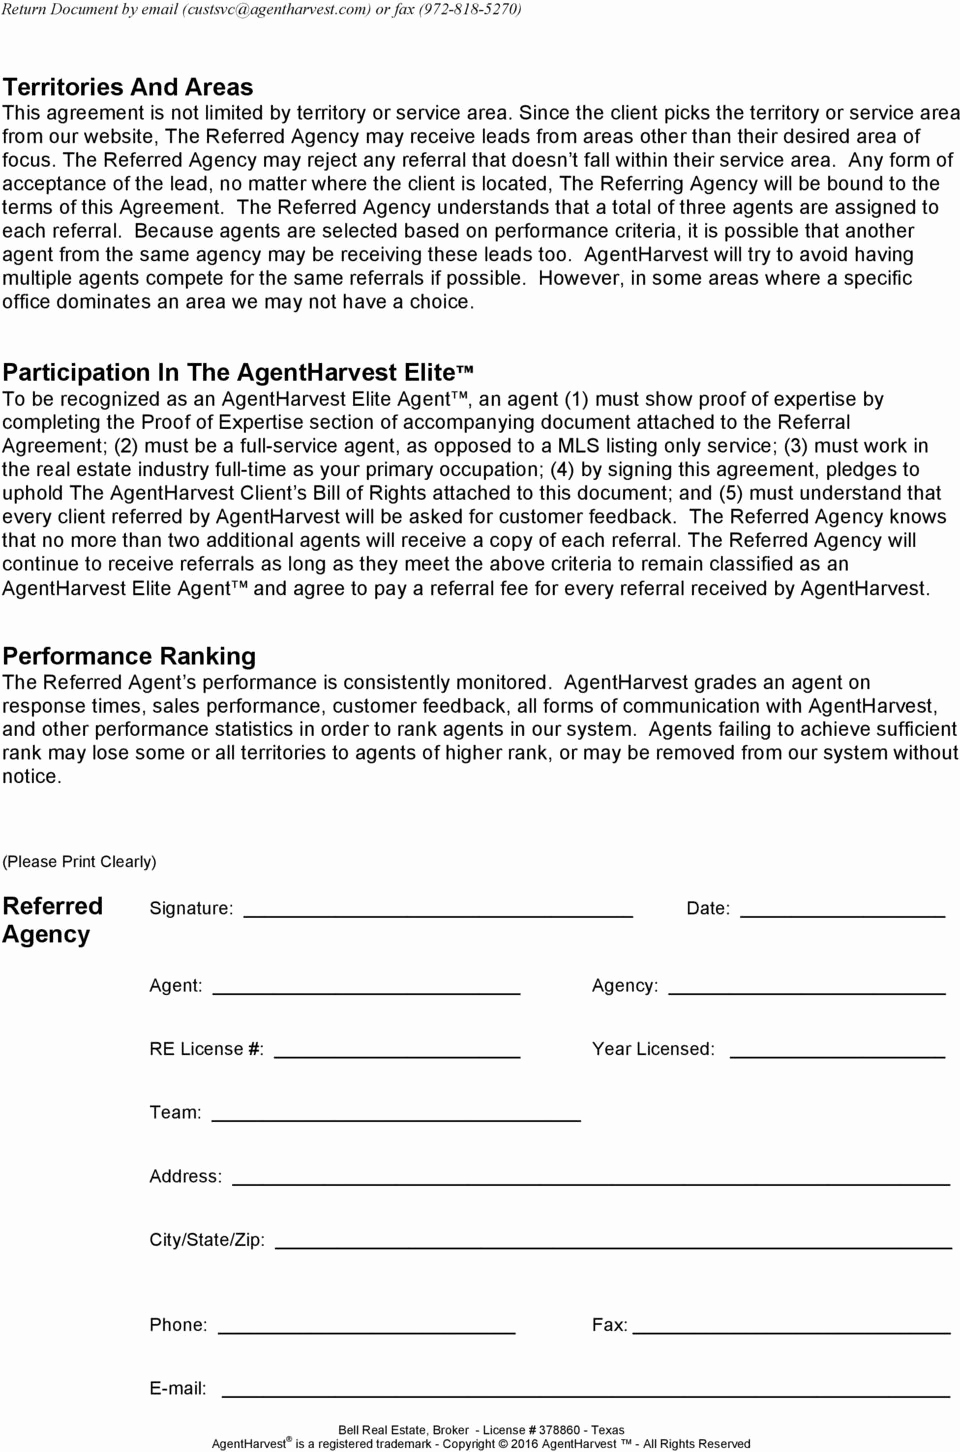 Real Estate Referral form Best Of Agentharvest Elite Agent Real Estate Client Referral